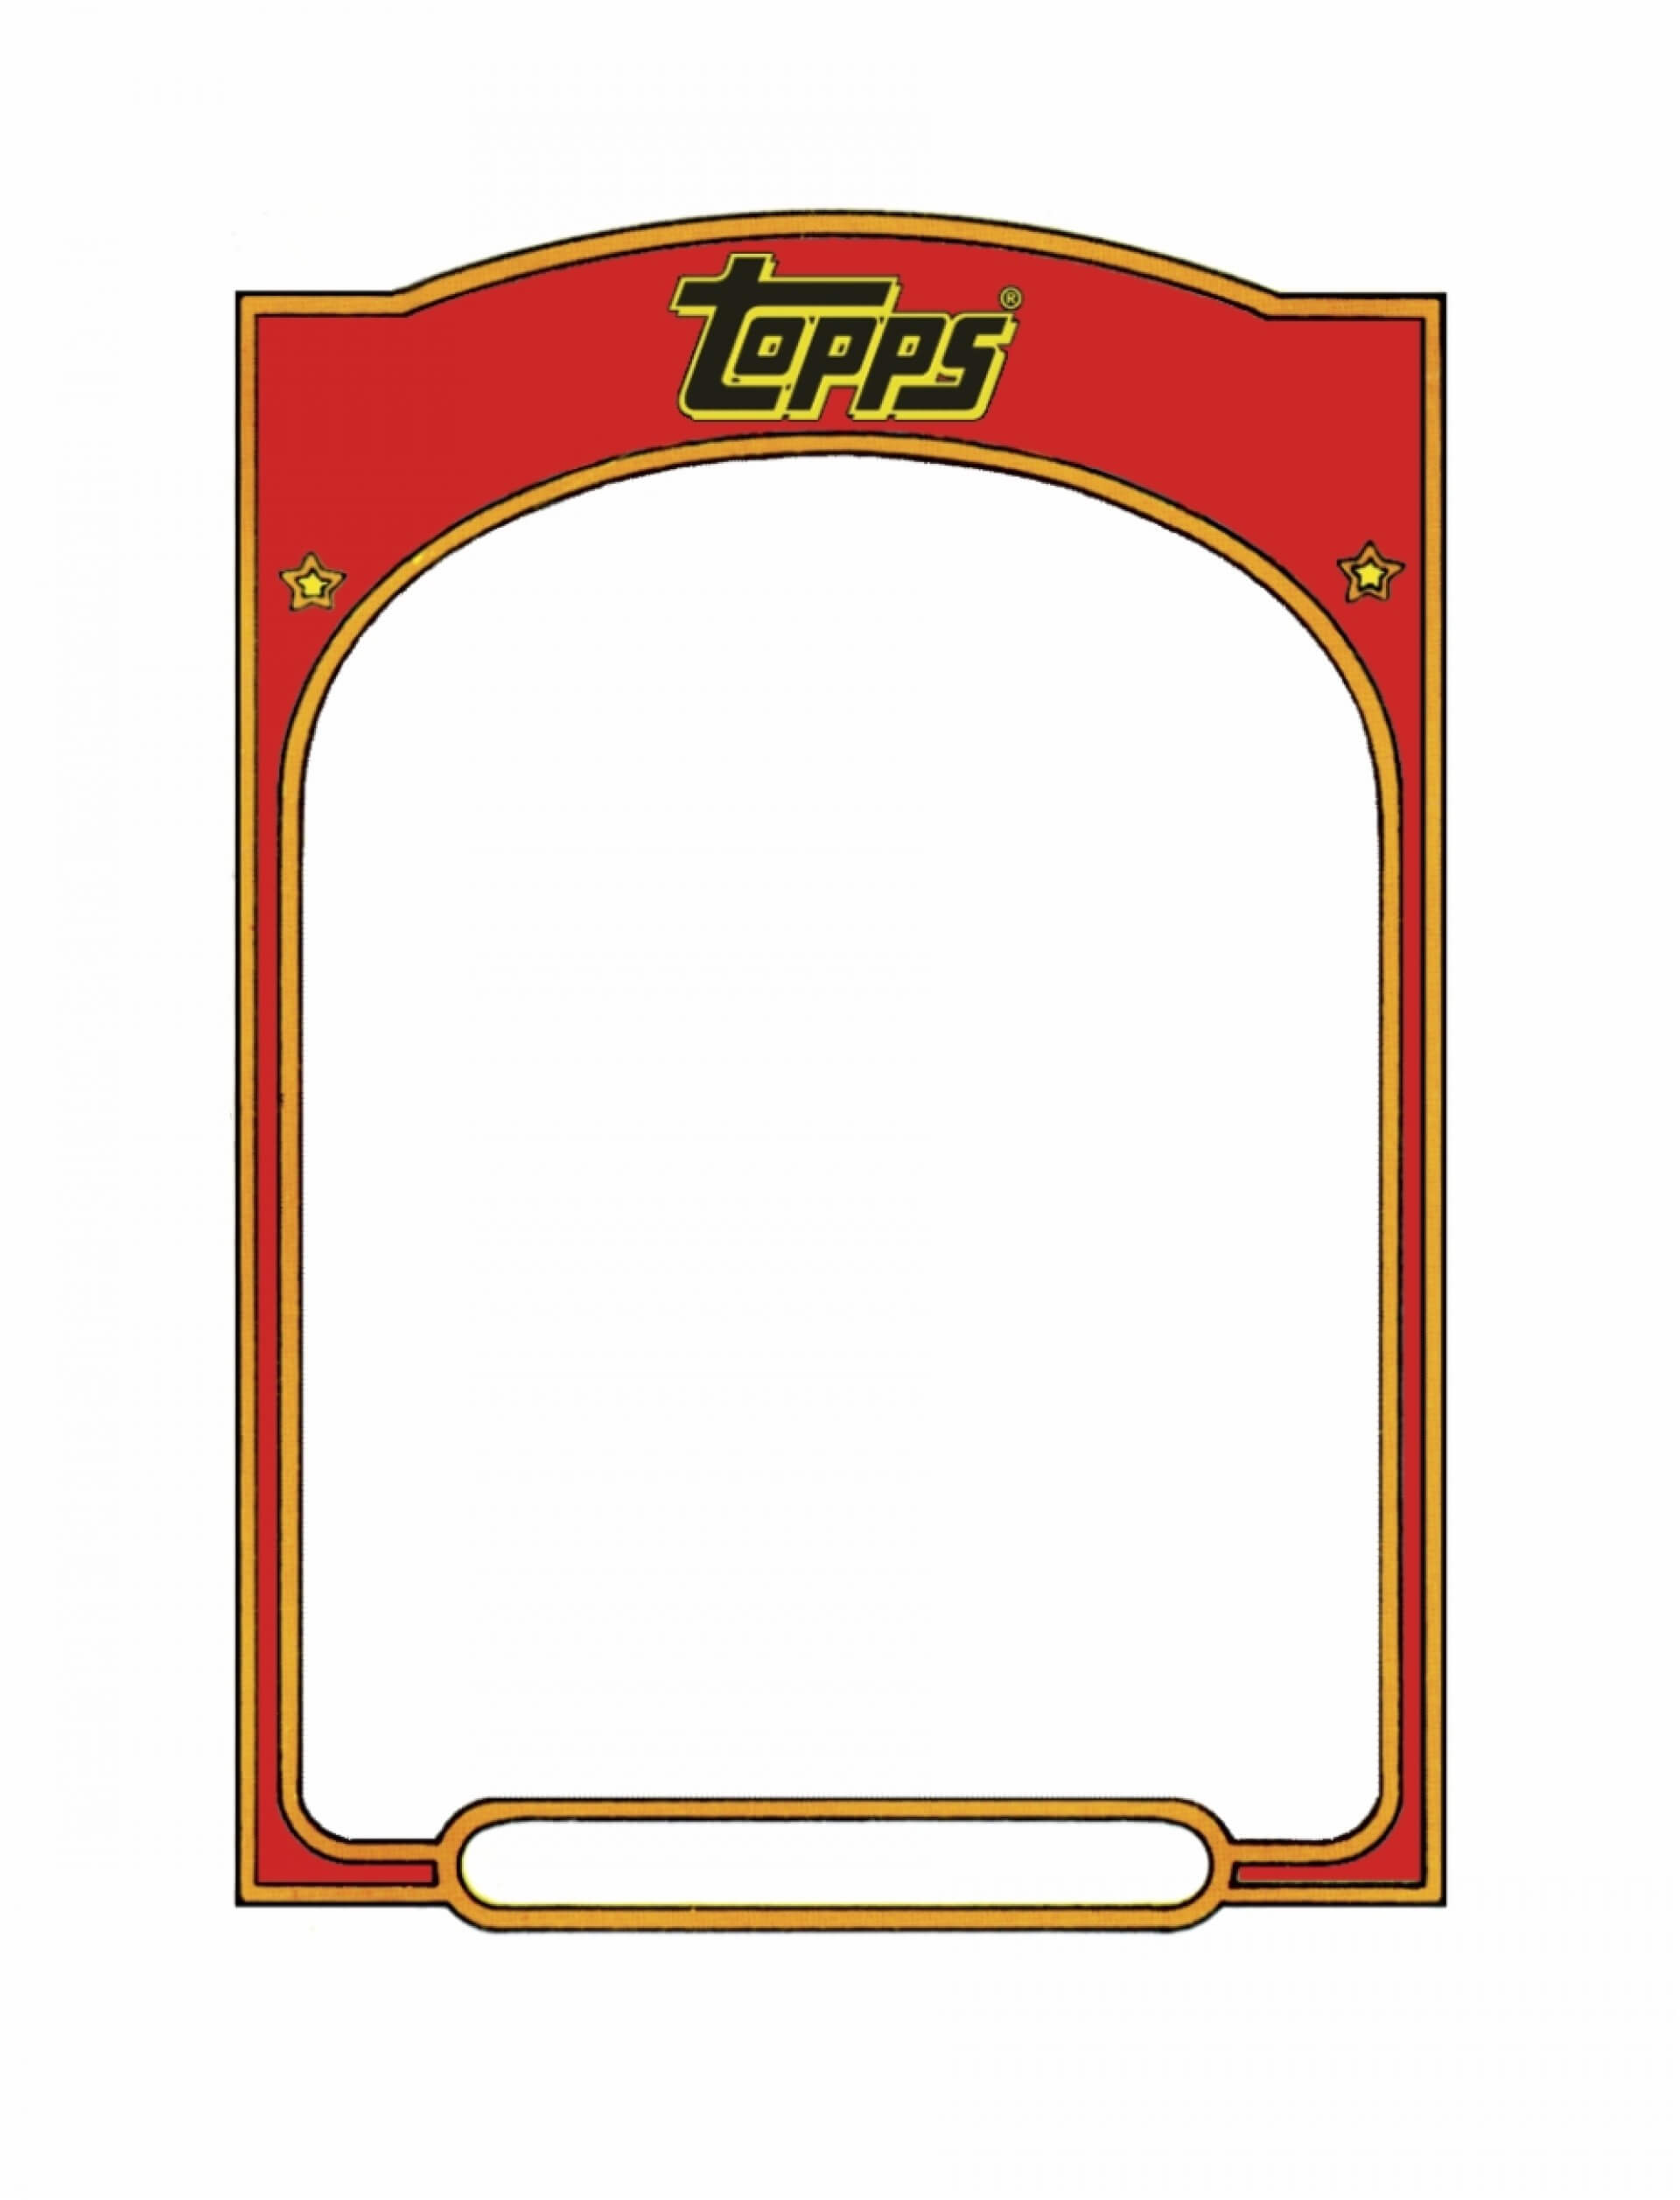 005 Baseball Card Template Word Ideas Front And Back O For Baseball Card Template Word